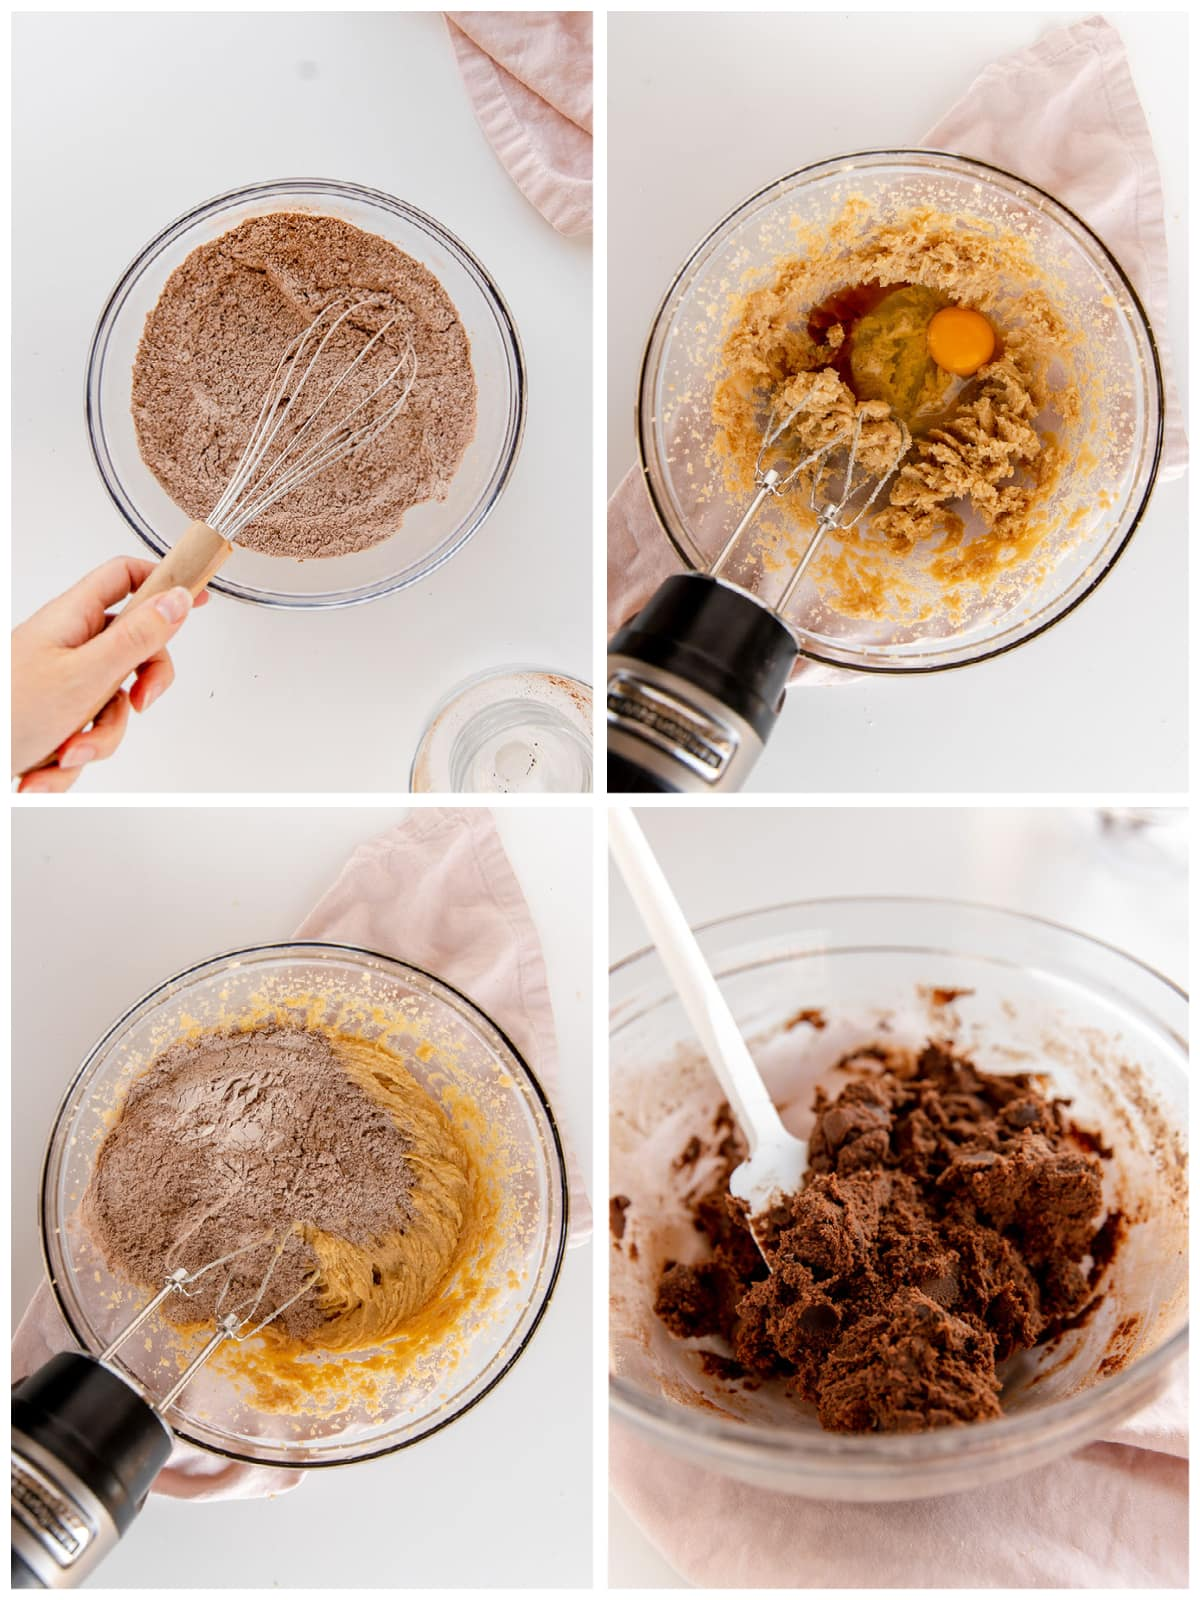 photo collage demonstrating how to make double chocolate chip cookie dough in a bowl with a hand mixer